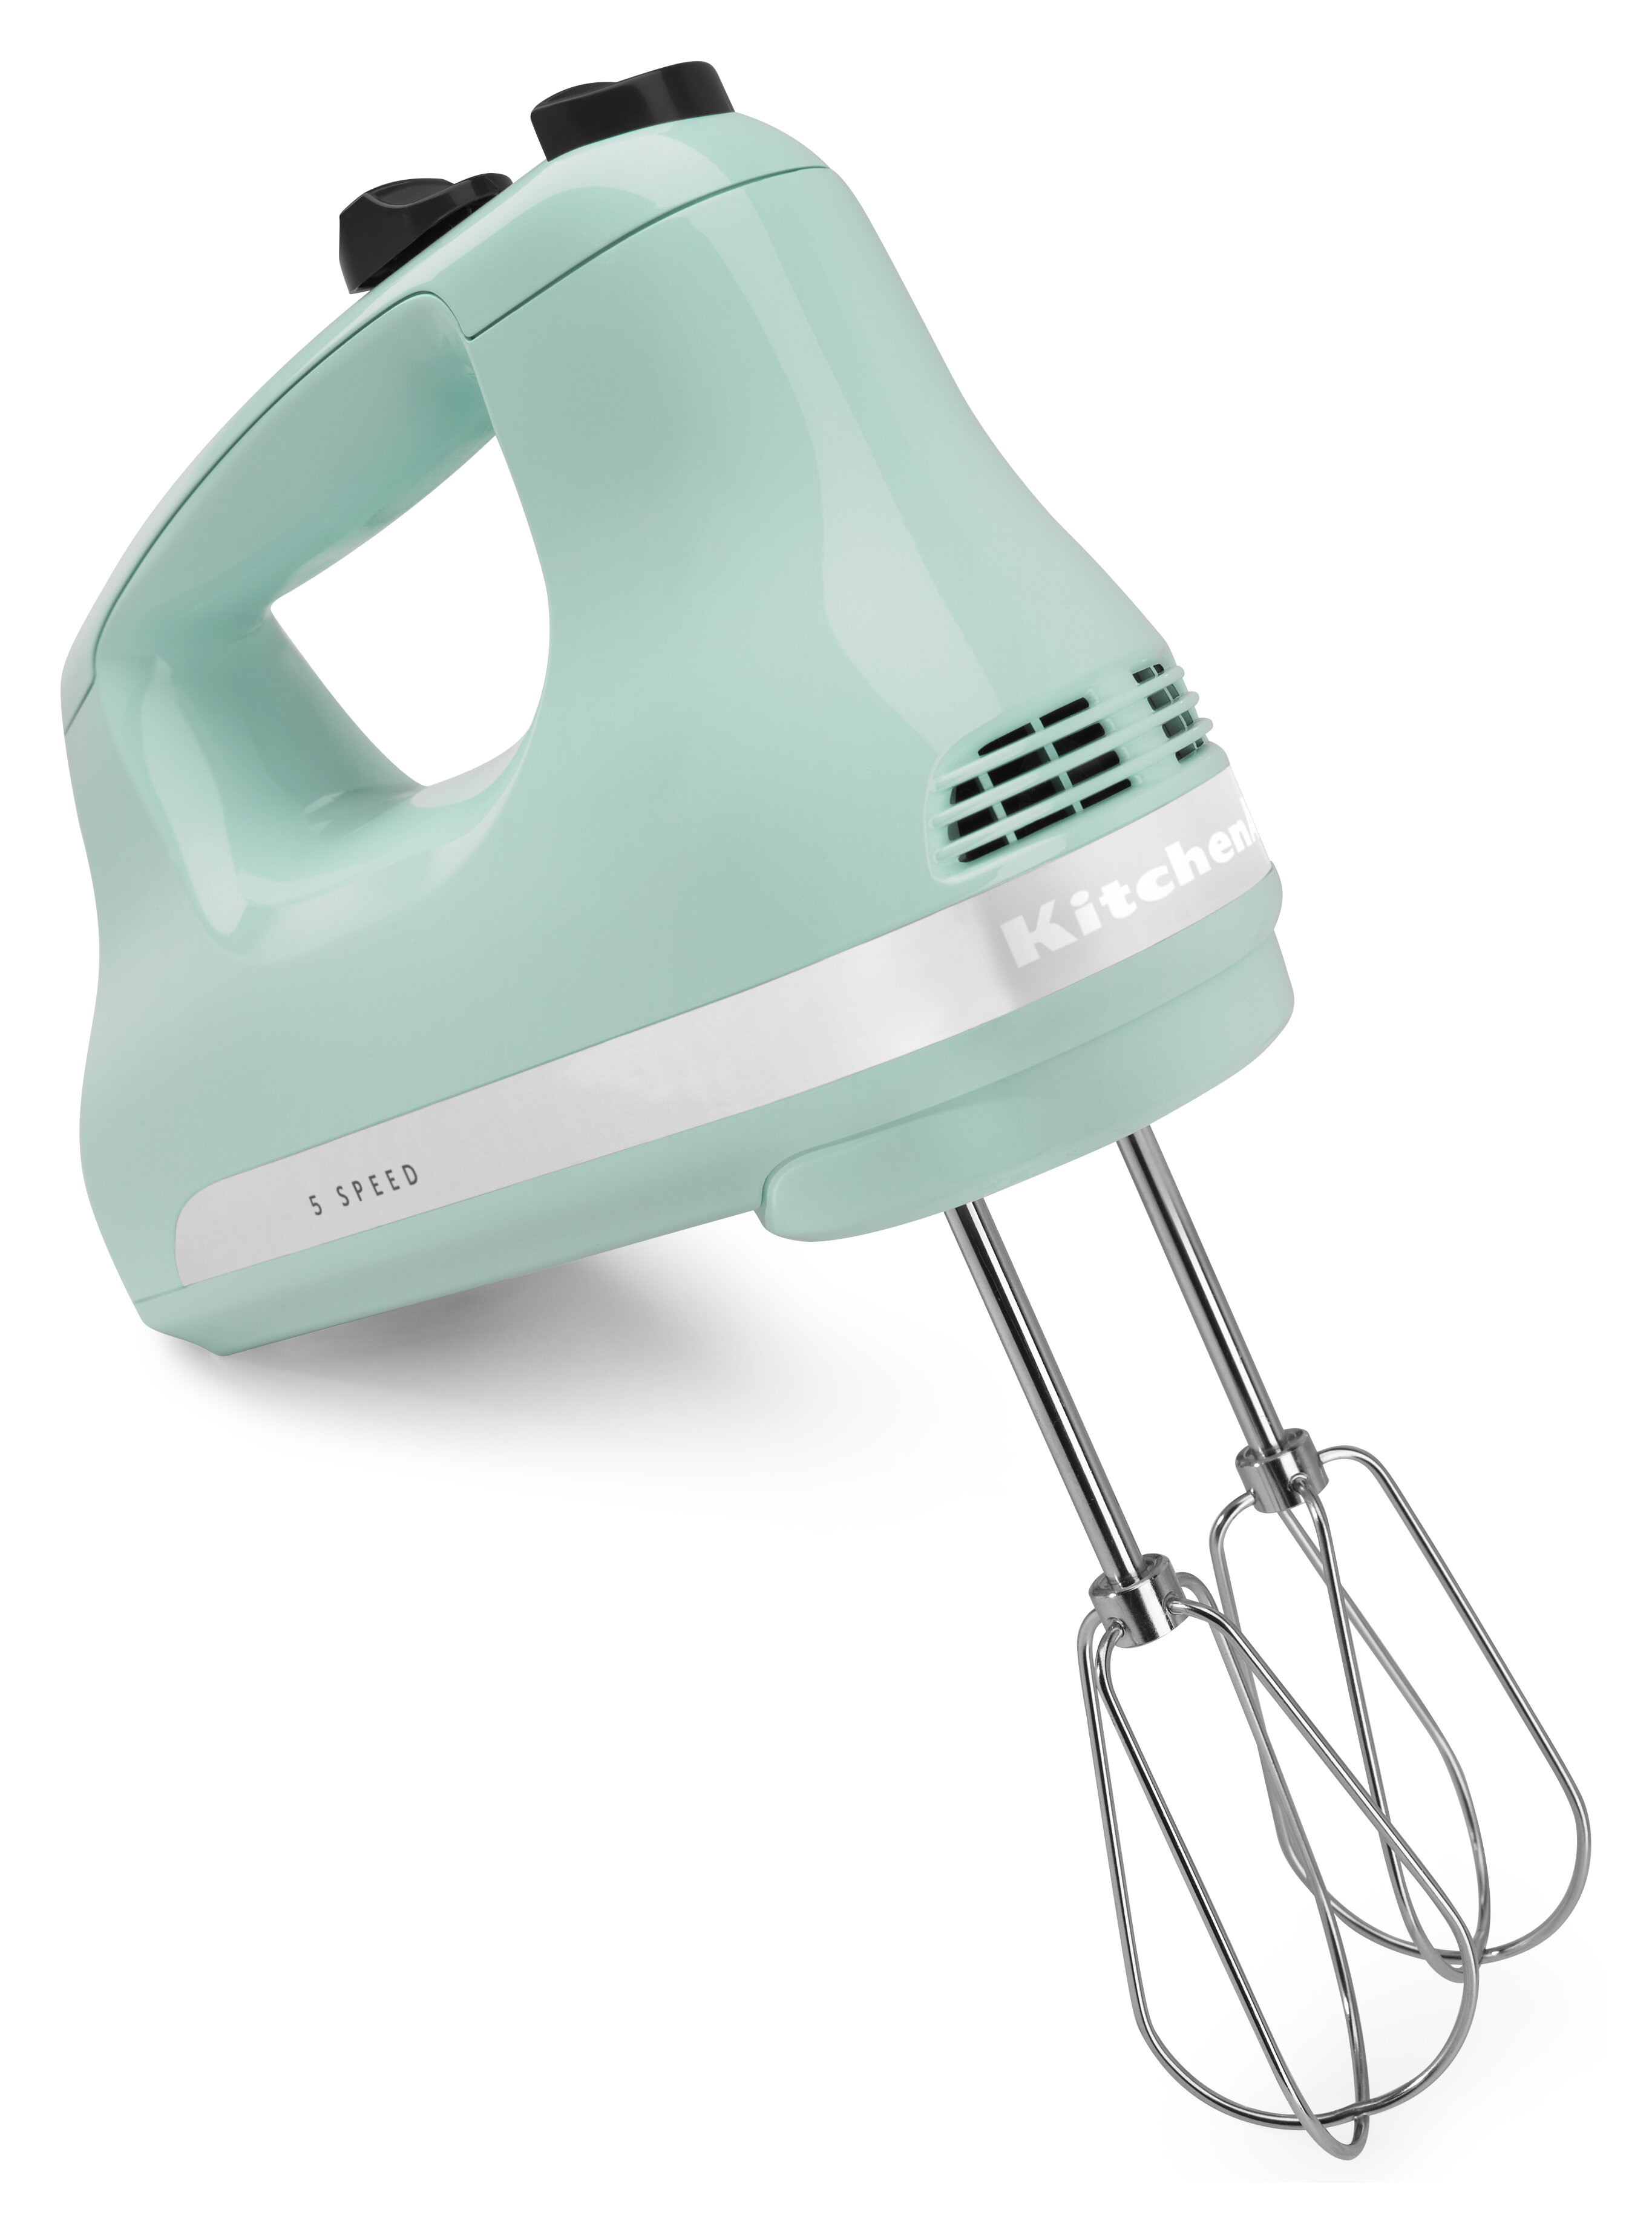 KitchenAid Ultra Power 5 Speed Hand Mixer - KHM512 & Reviews | Wayfair